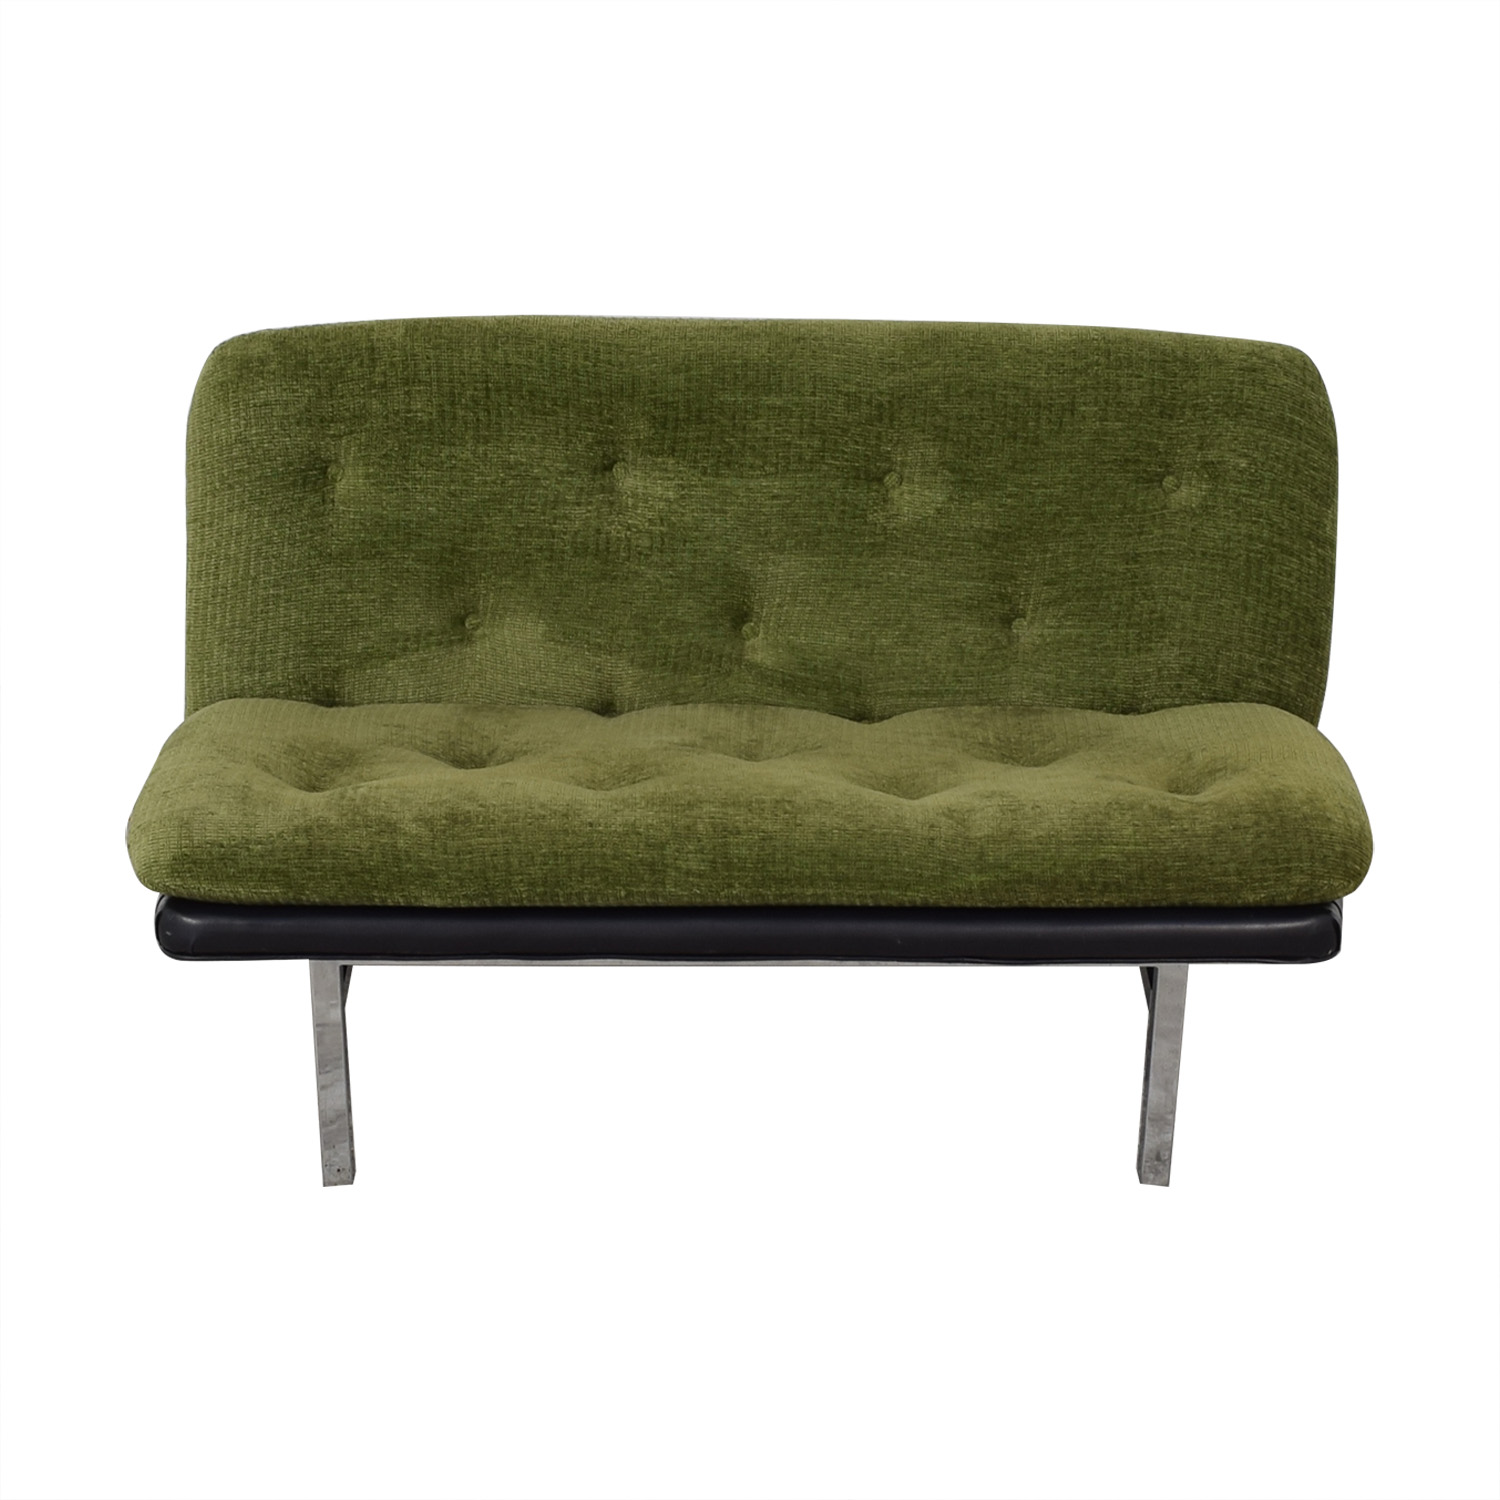 Tufted Modernist Loveseat / Sofas